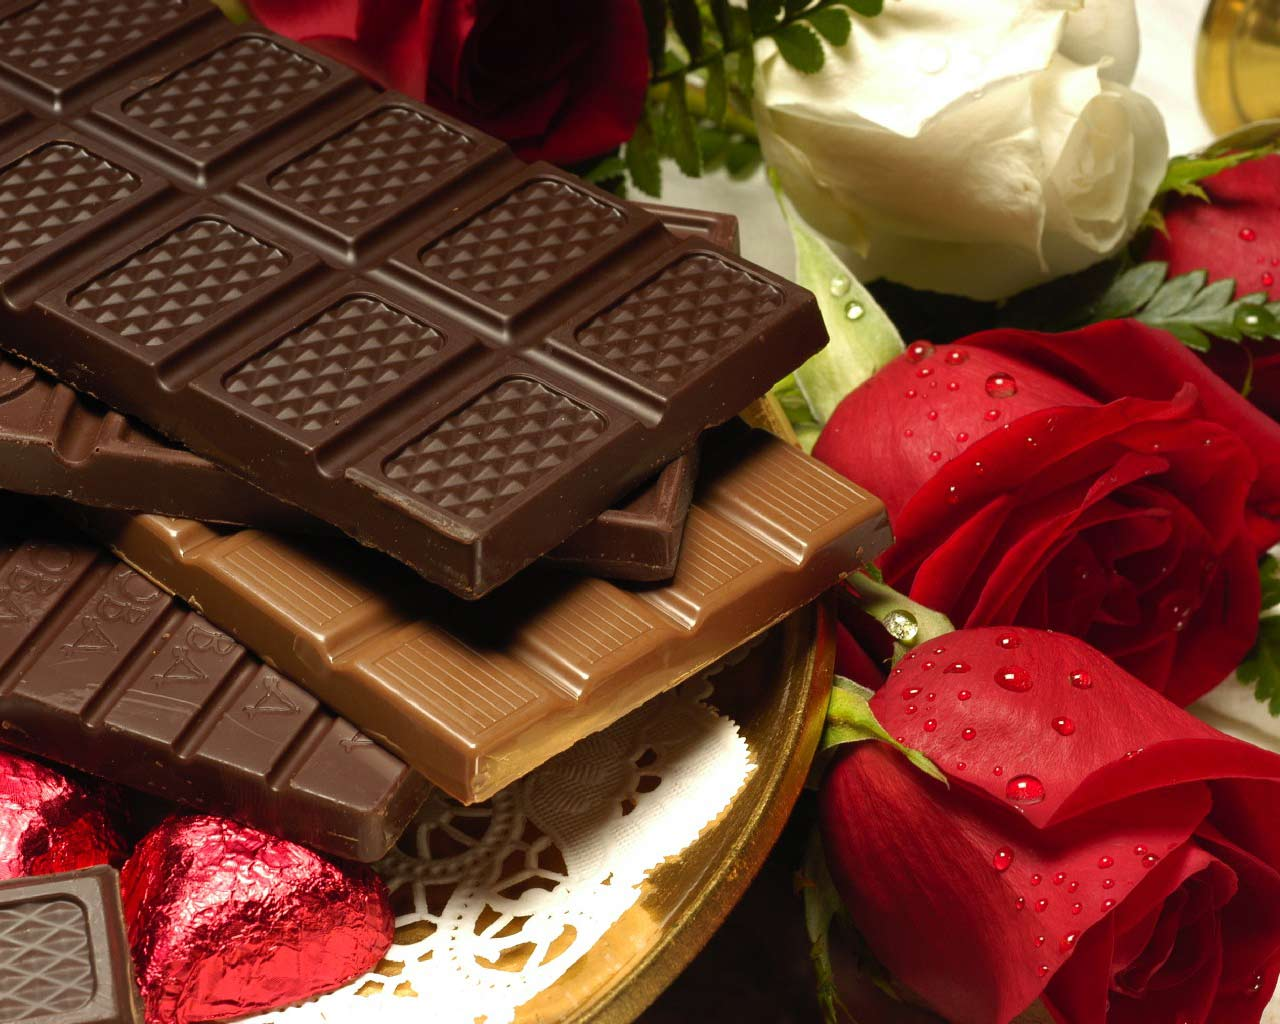 Romantic Chocolate Day Greeting